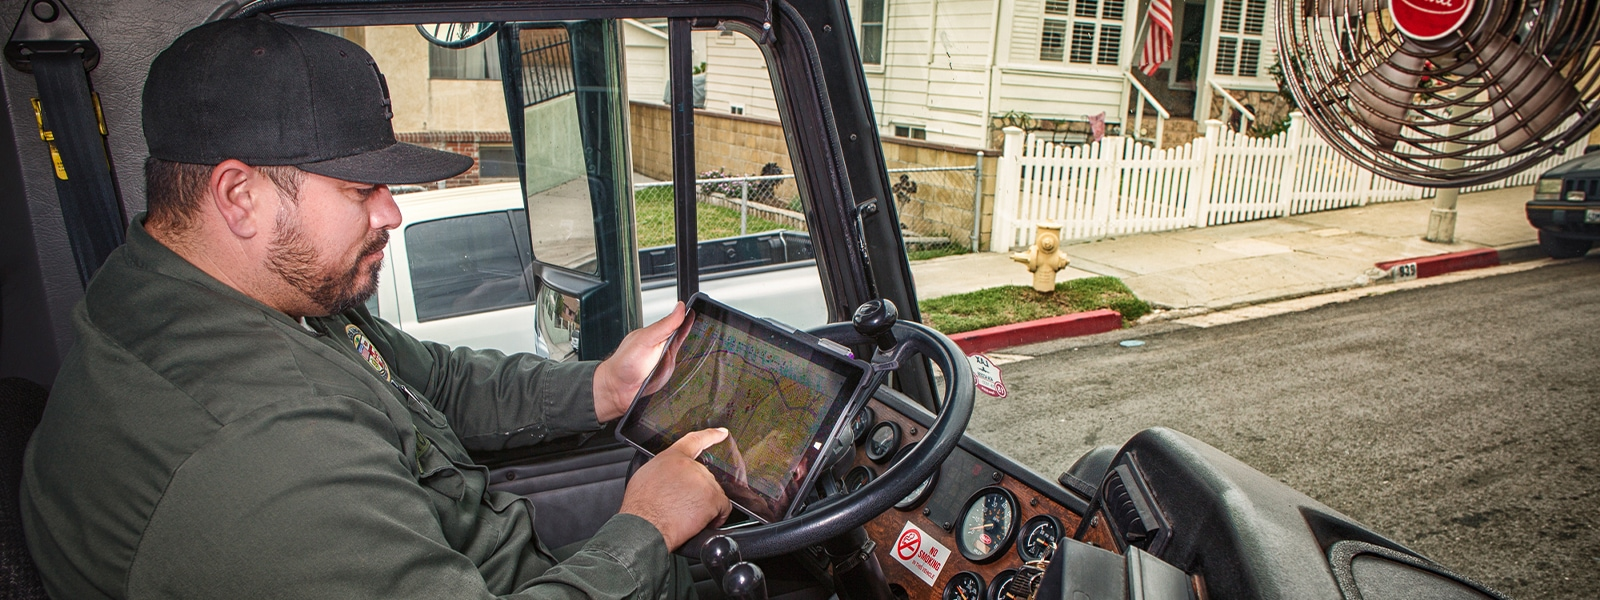 Driver using a tablet inside a vehicle